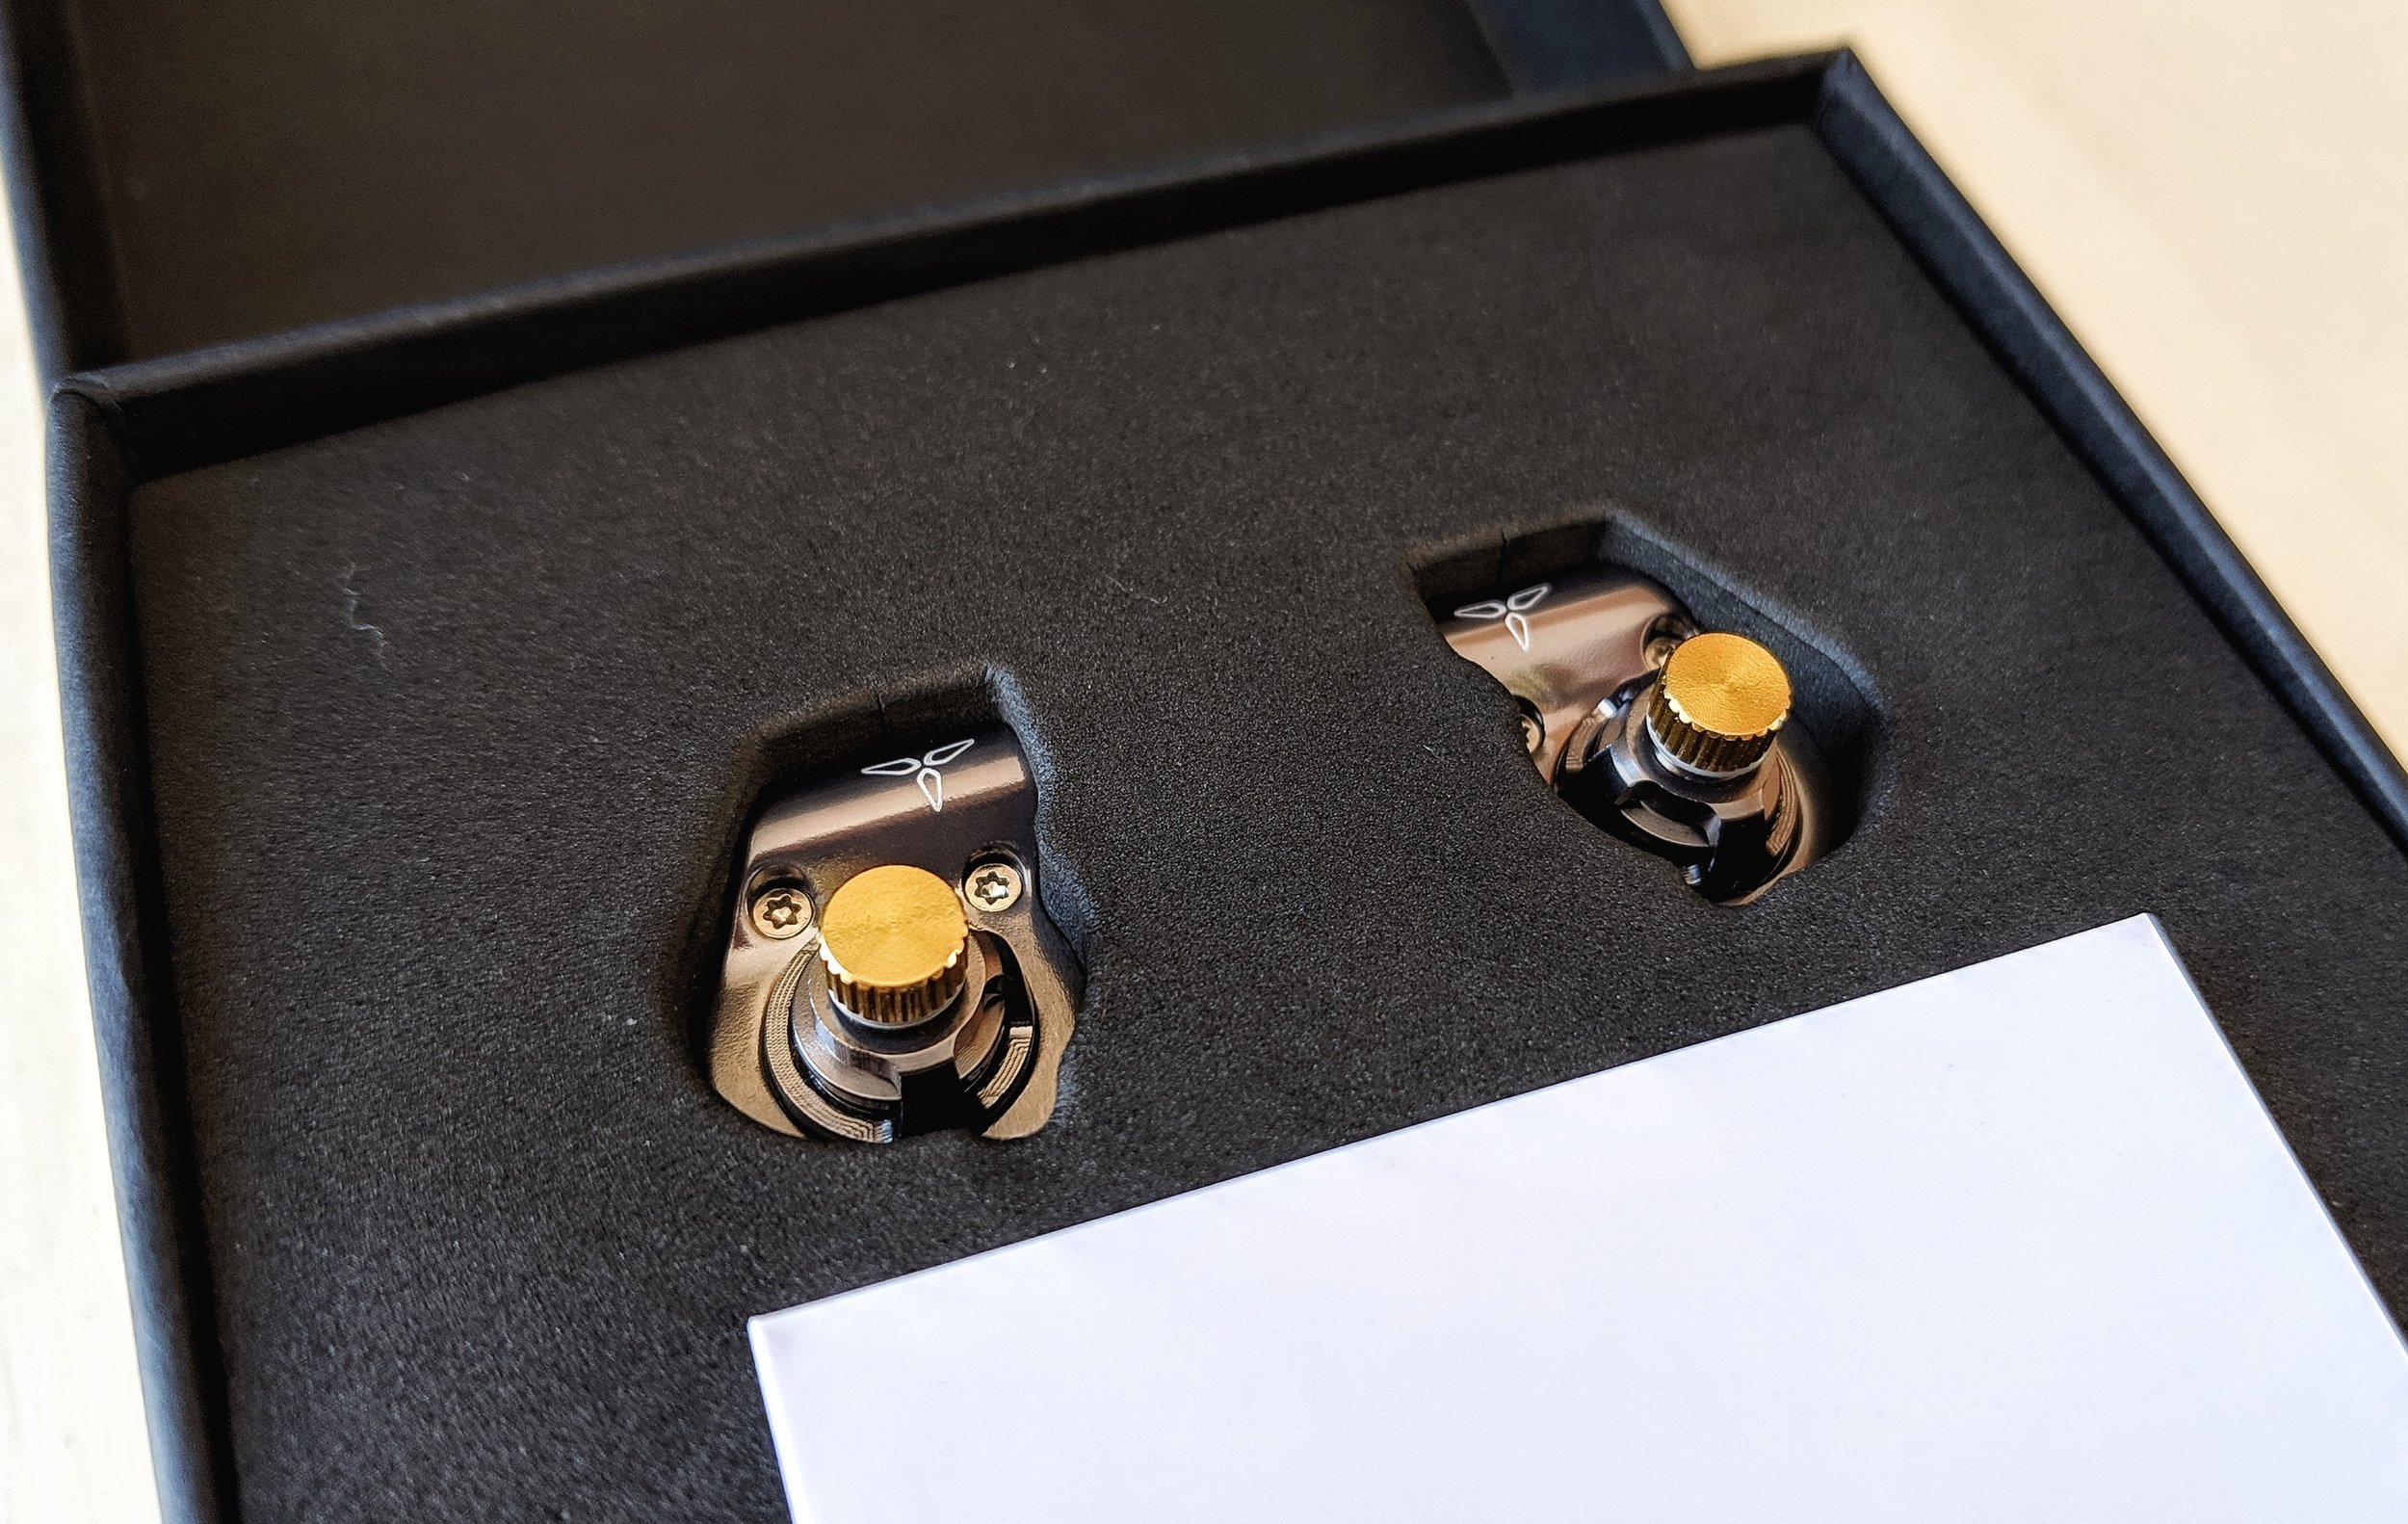 IMR R1 Zenith Earphones - Review of the new design from IMR acoustics.